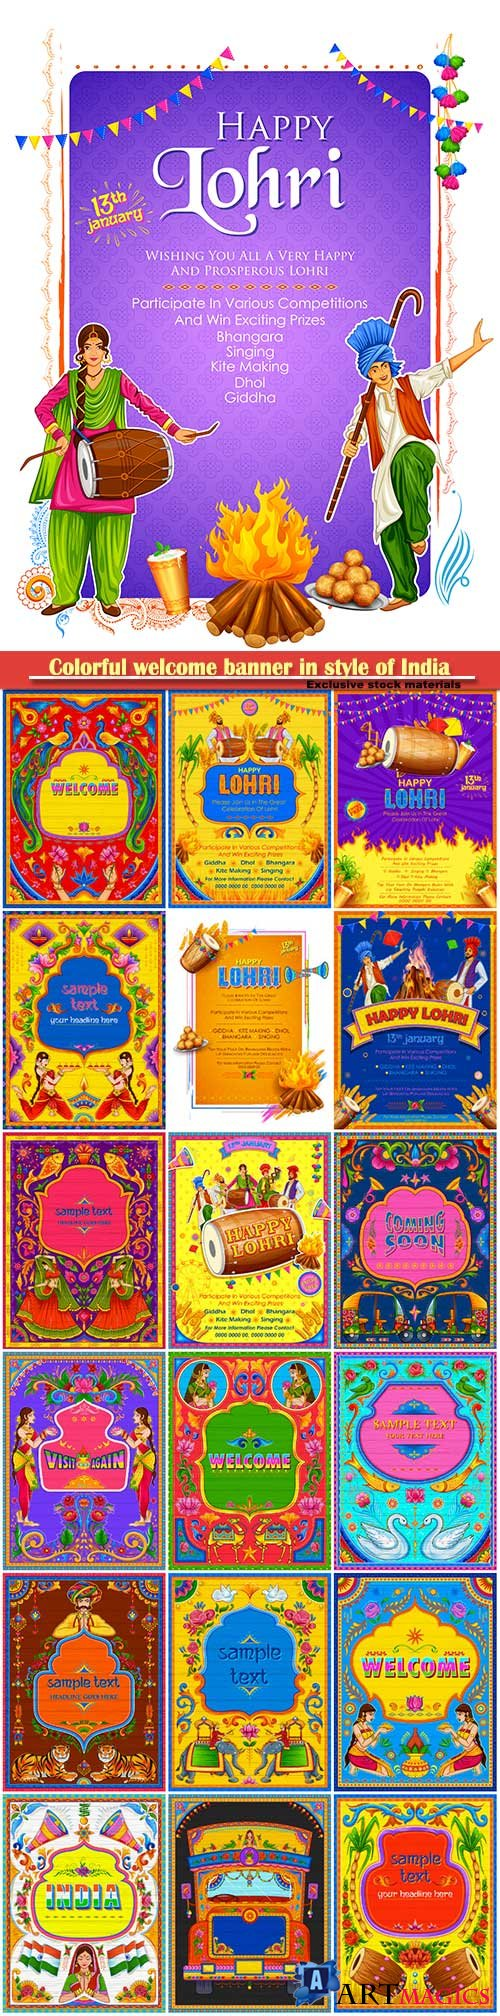 Vector illustration of colorful welcome banner in style of India